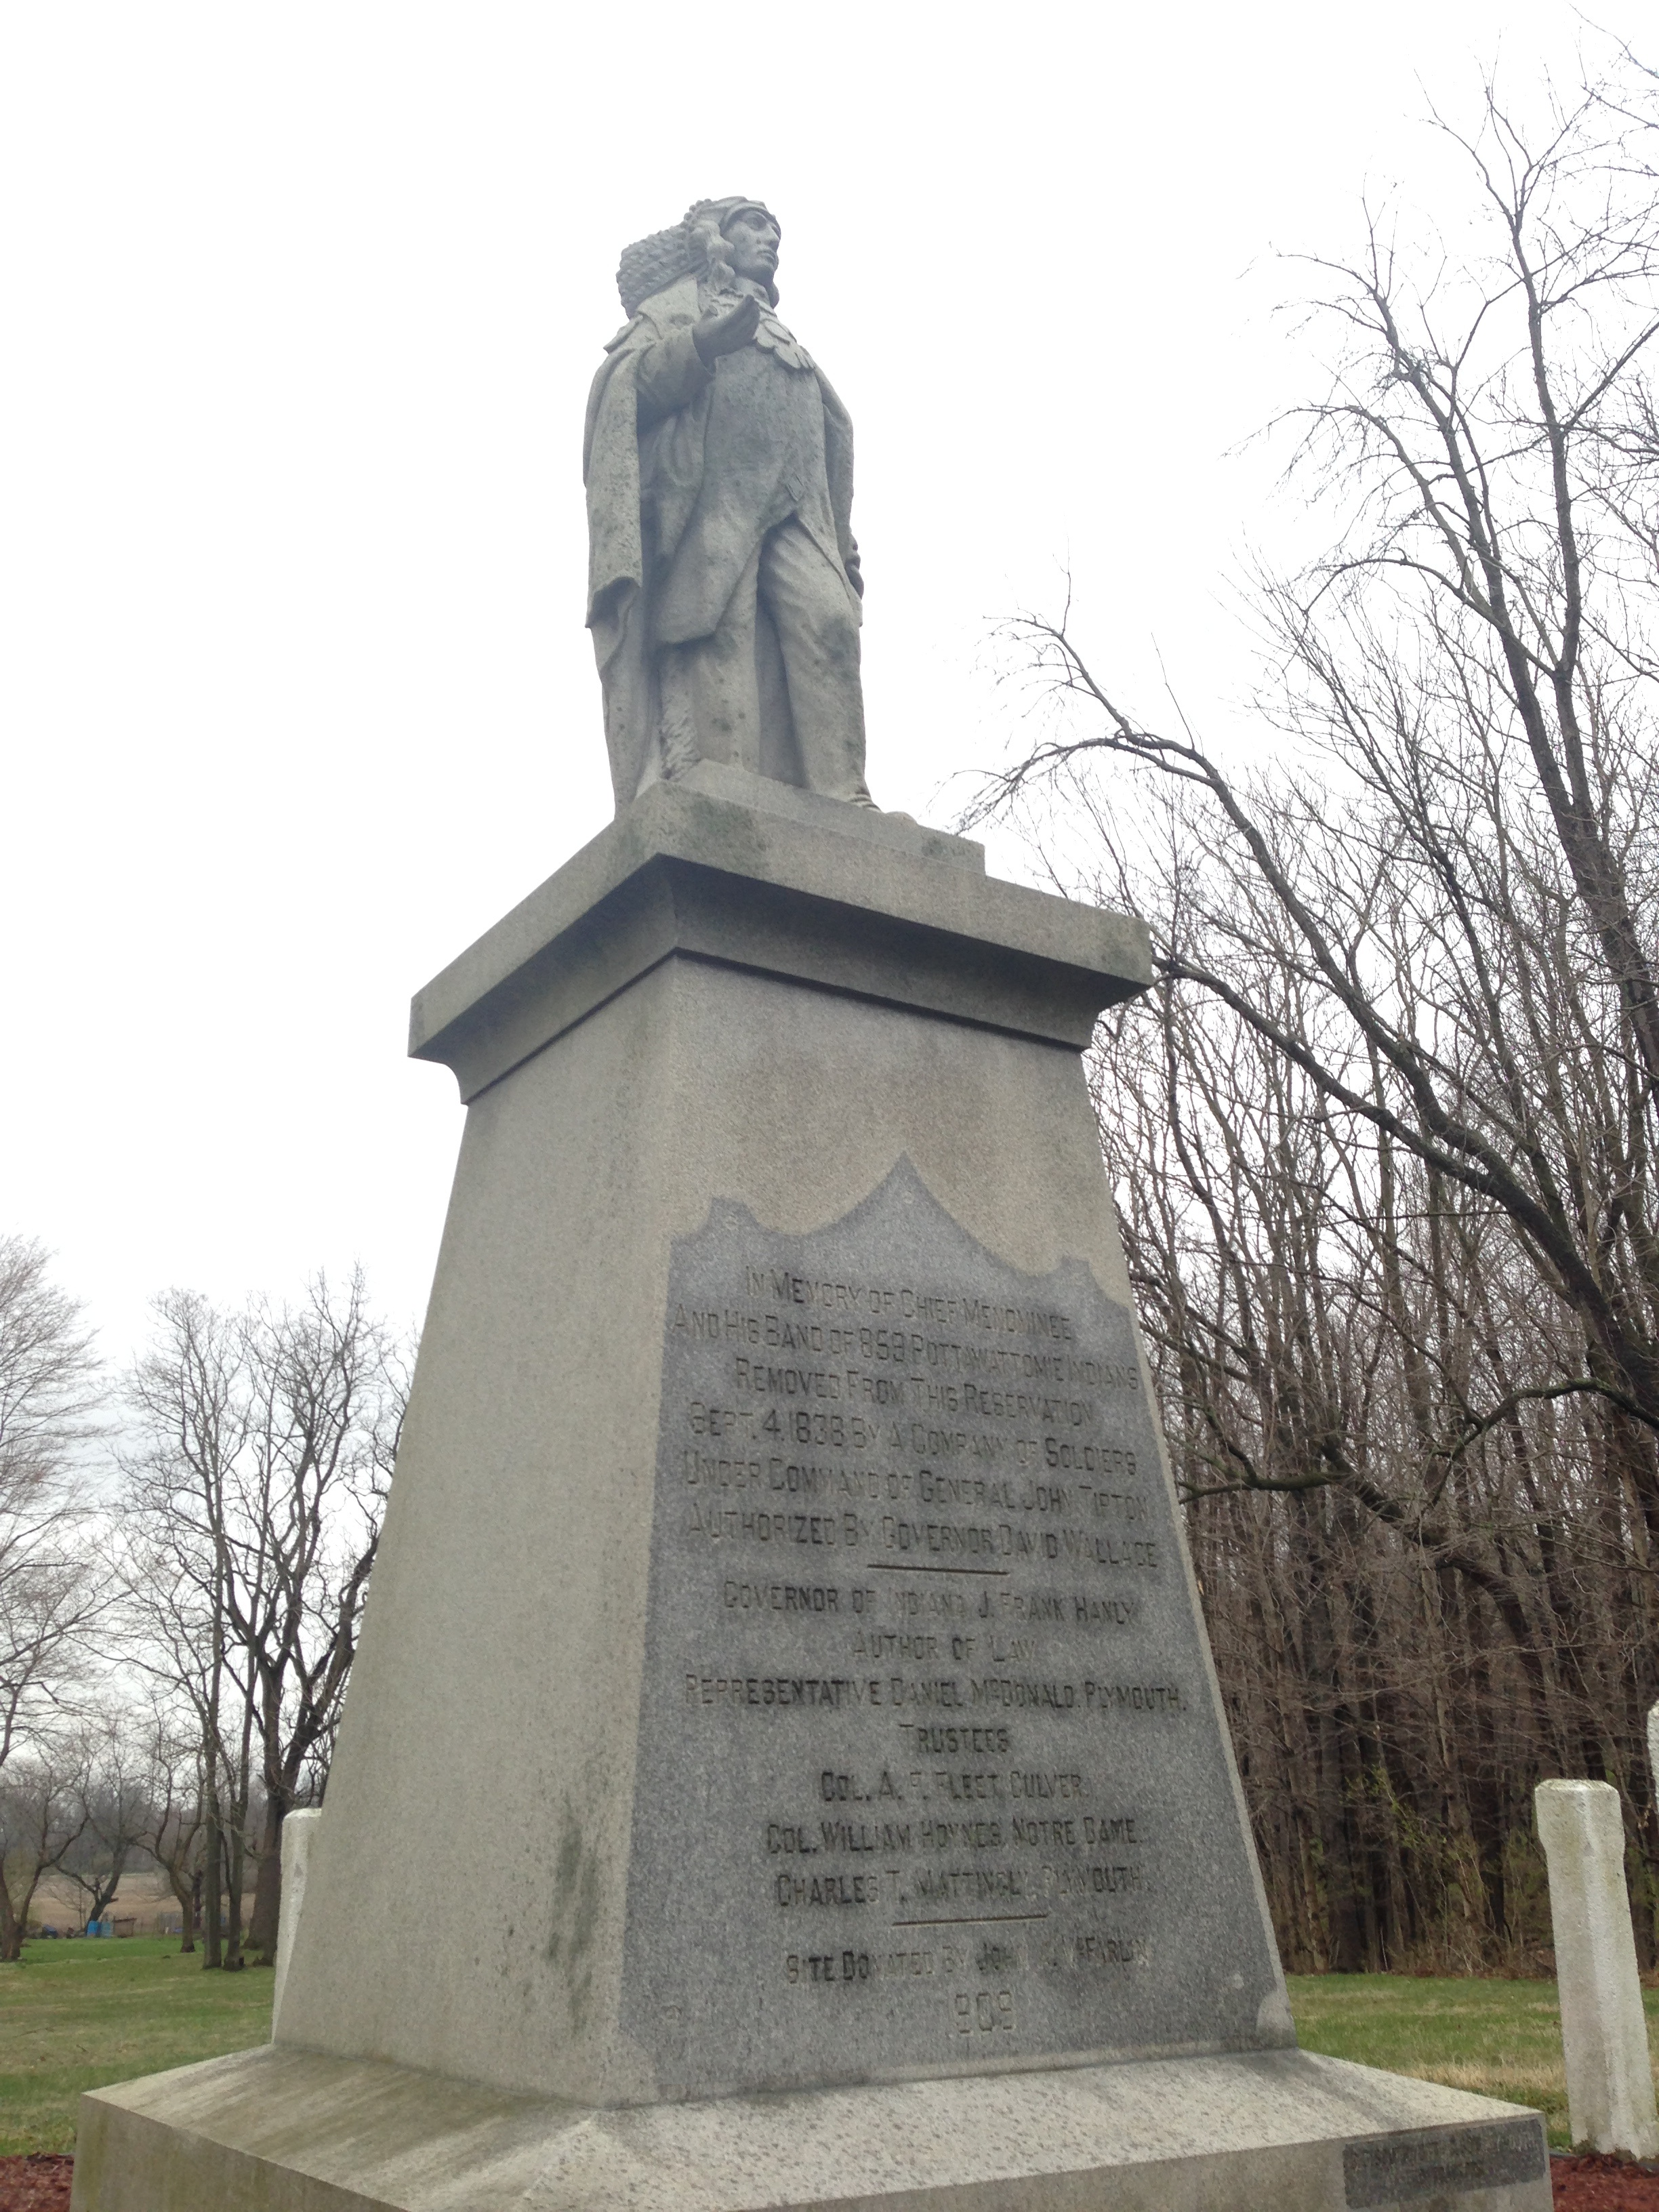 The statue of Chief Menominee at Twin Lakes, IN